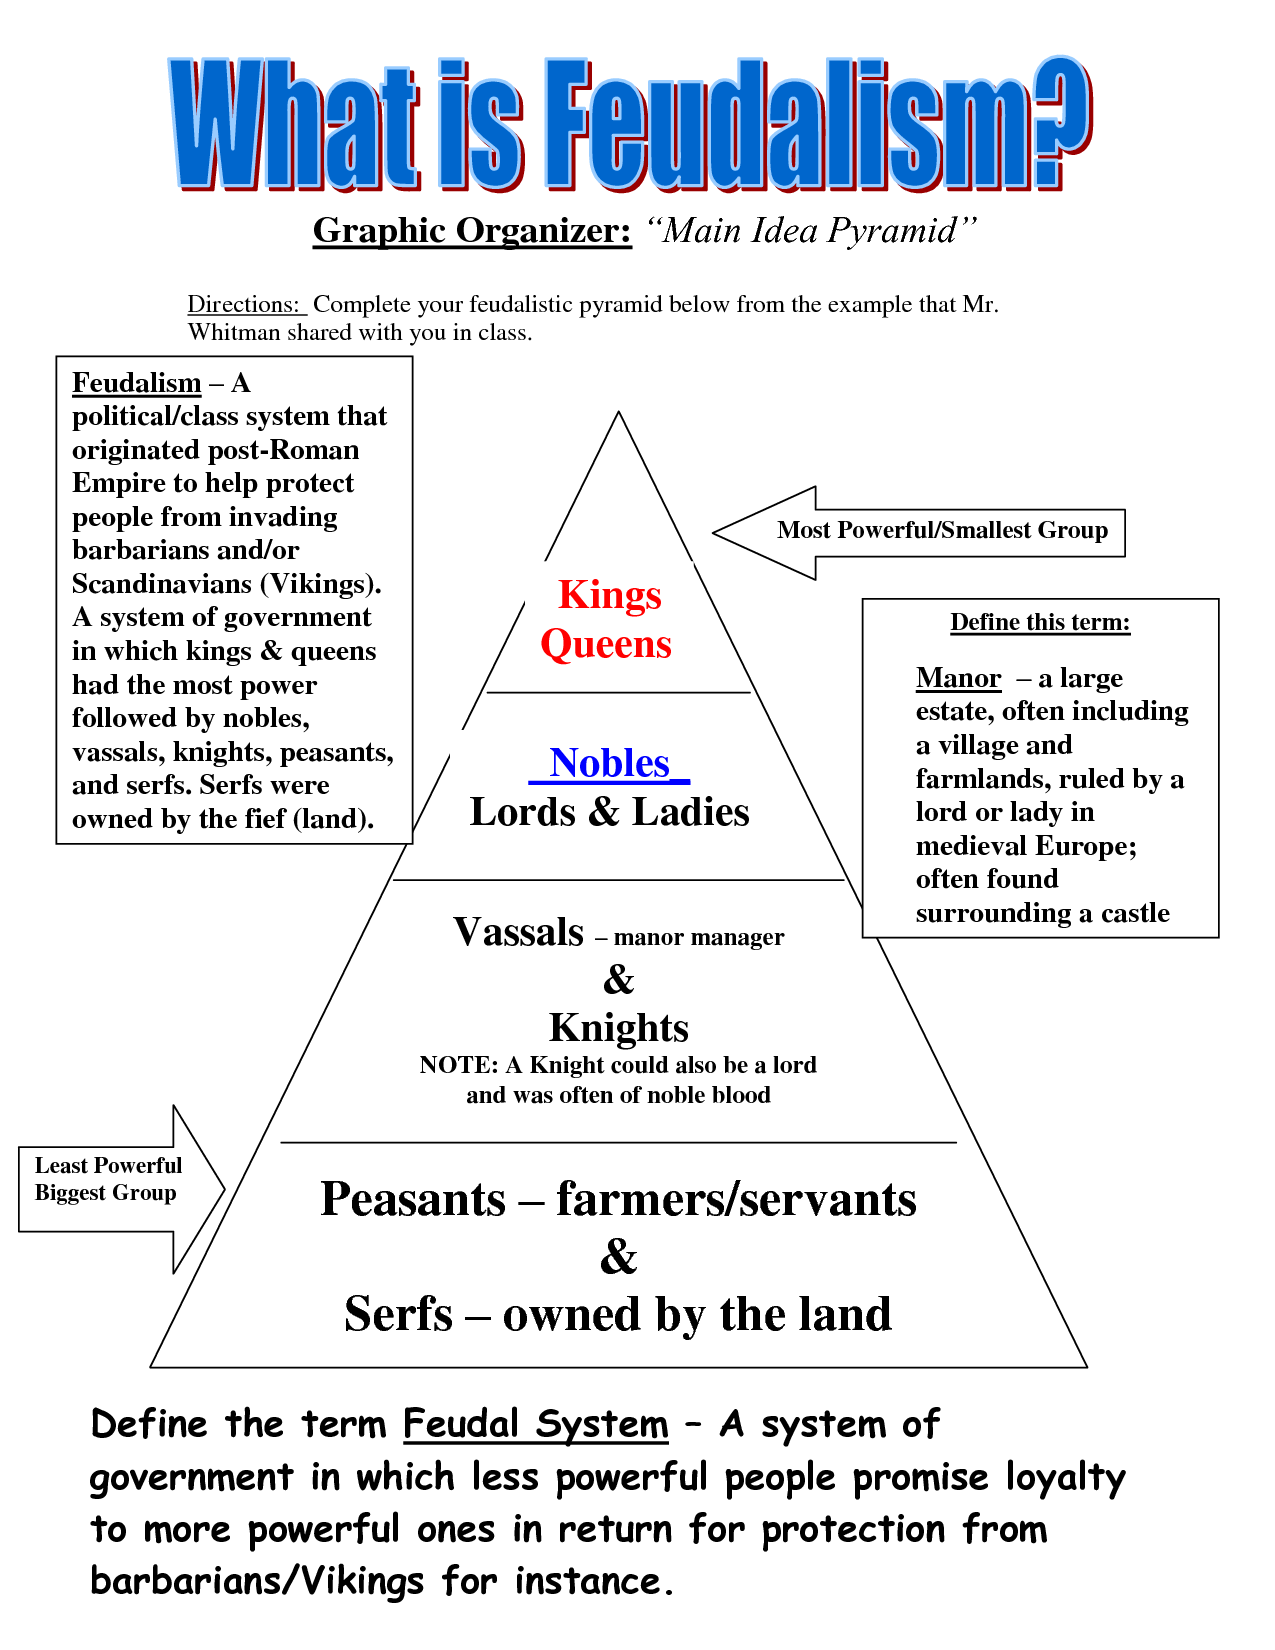 feudalism time period feudalism pyramid in medieval europe  feudalism time period feudalism pyramid in medieval europe